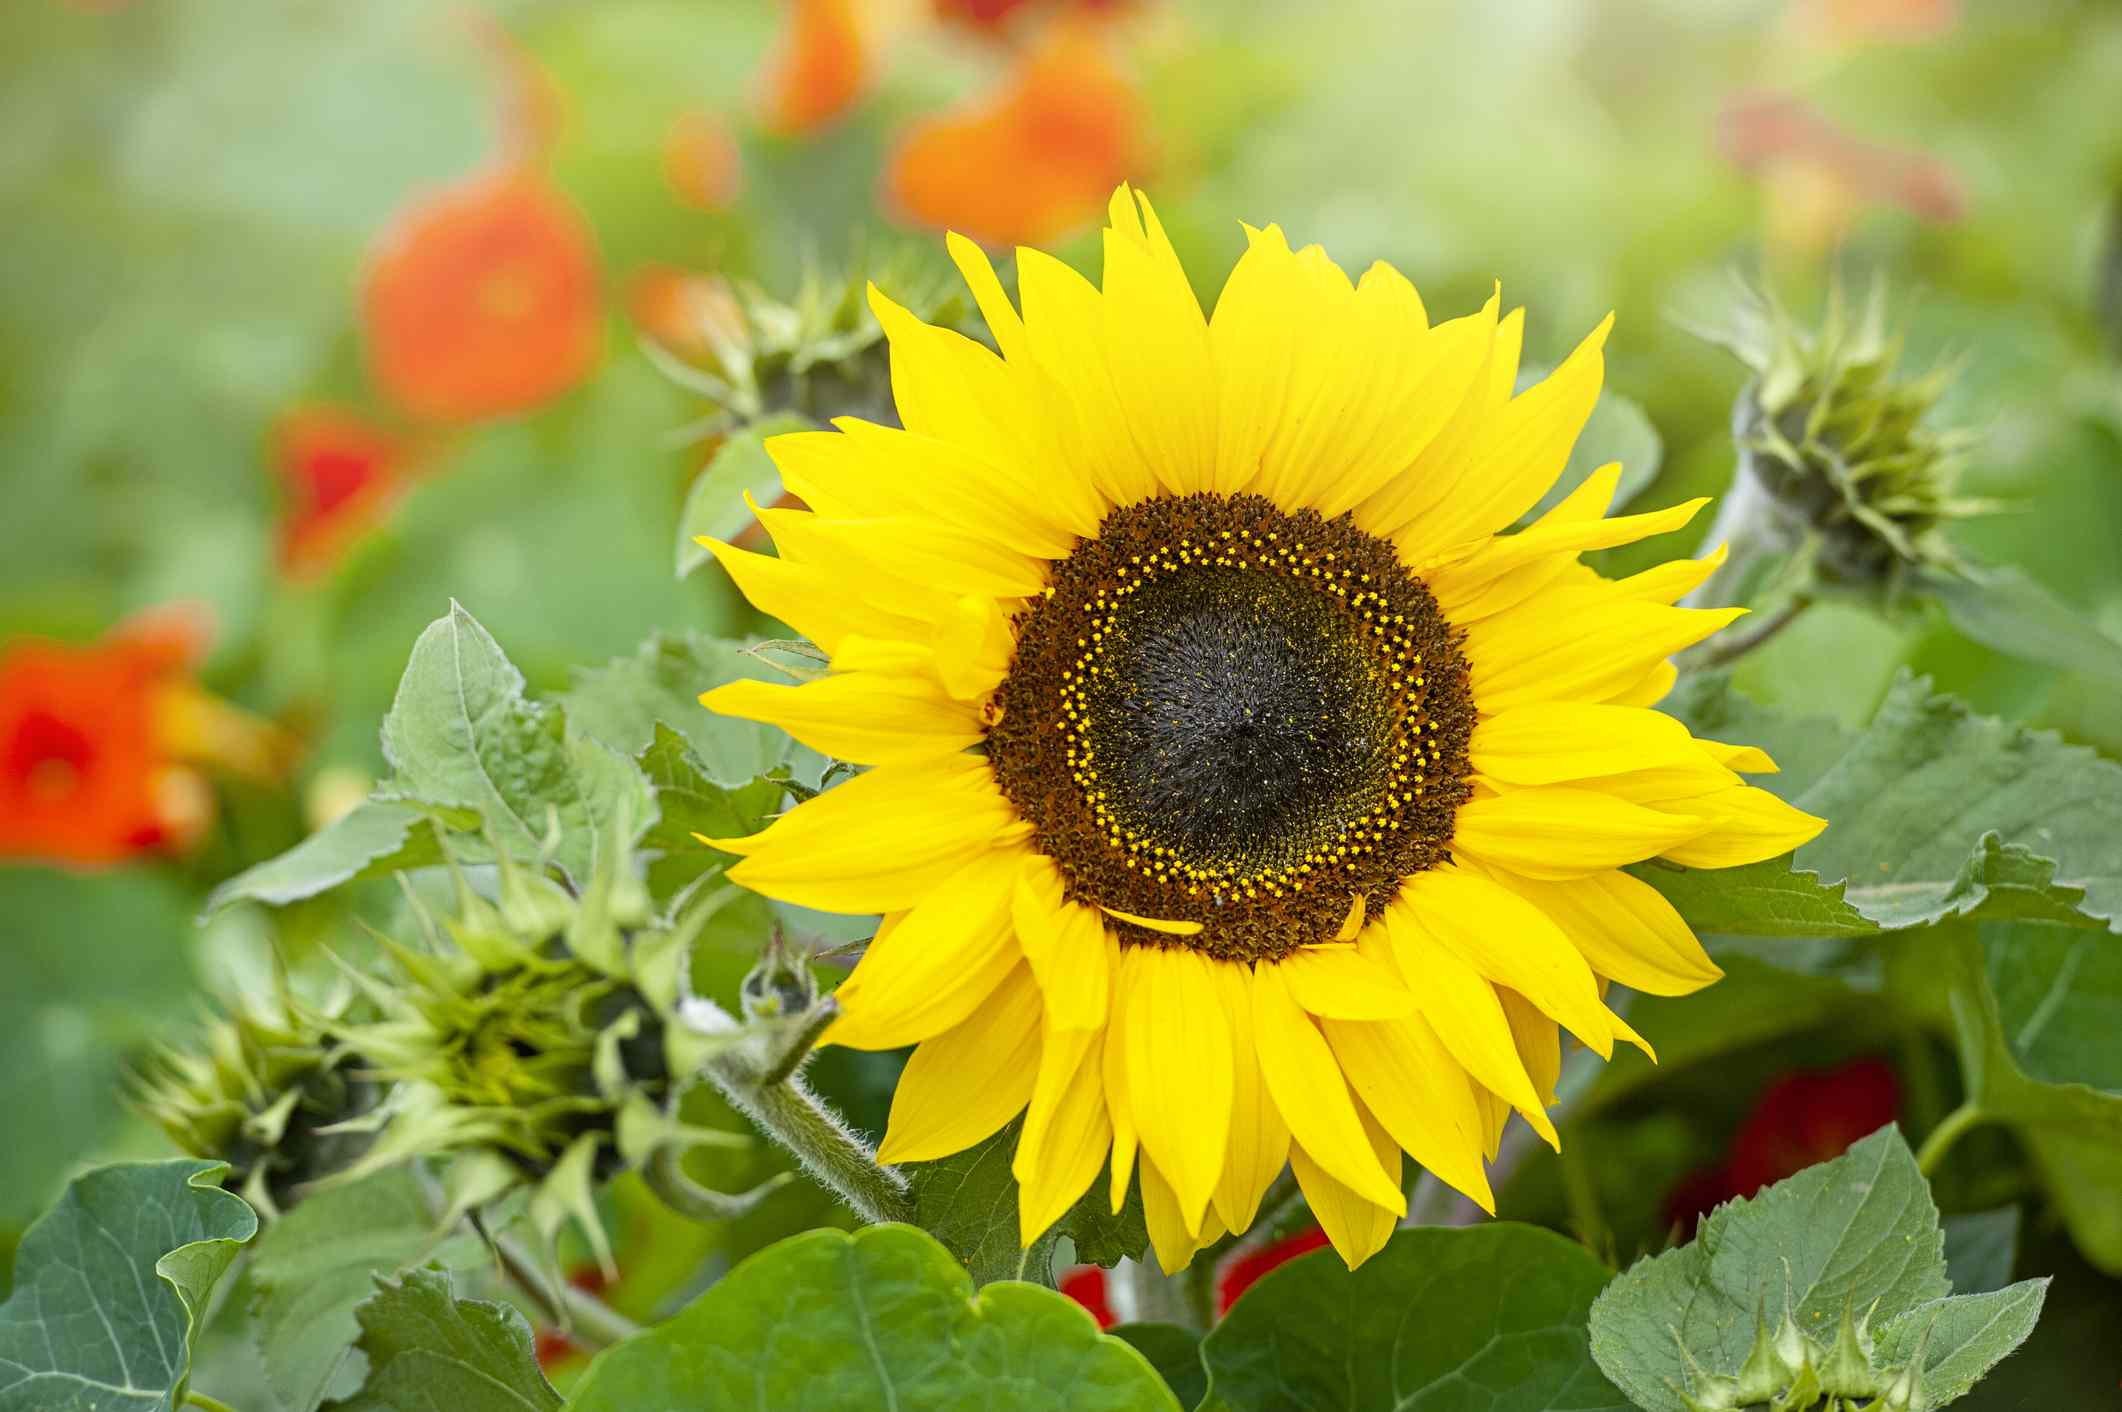 Sunflower with other flowers out of focus